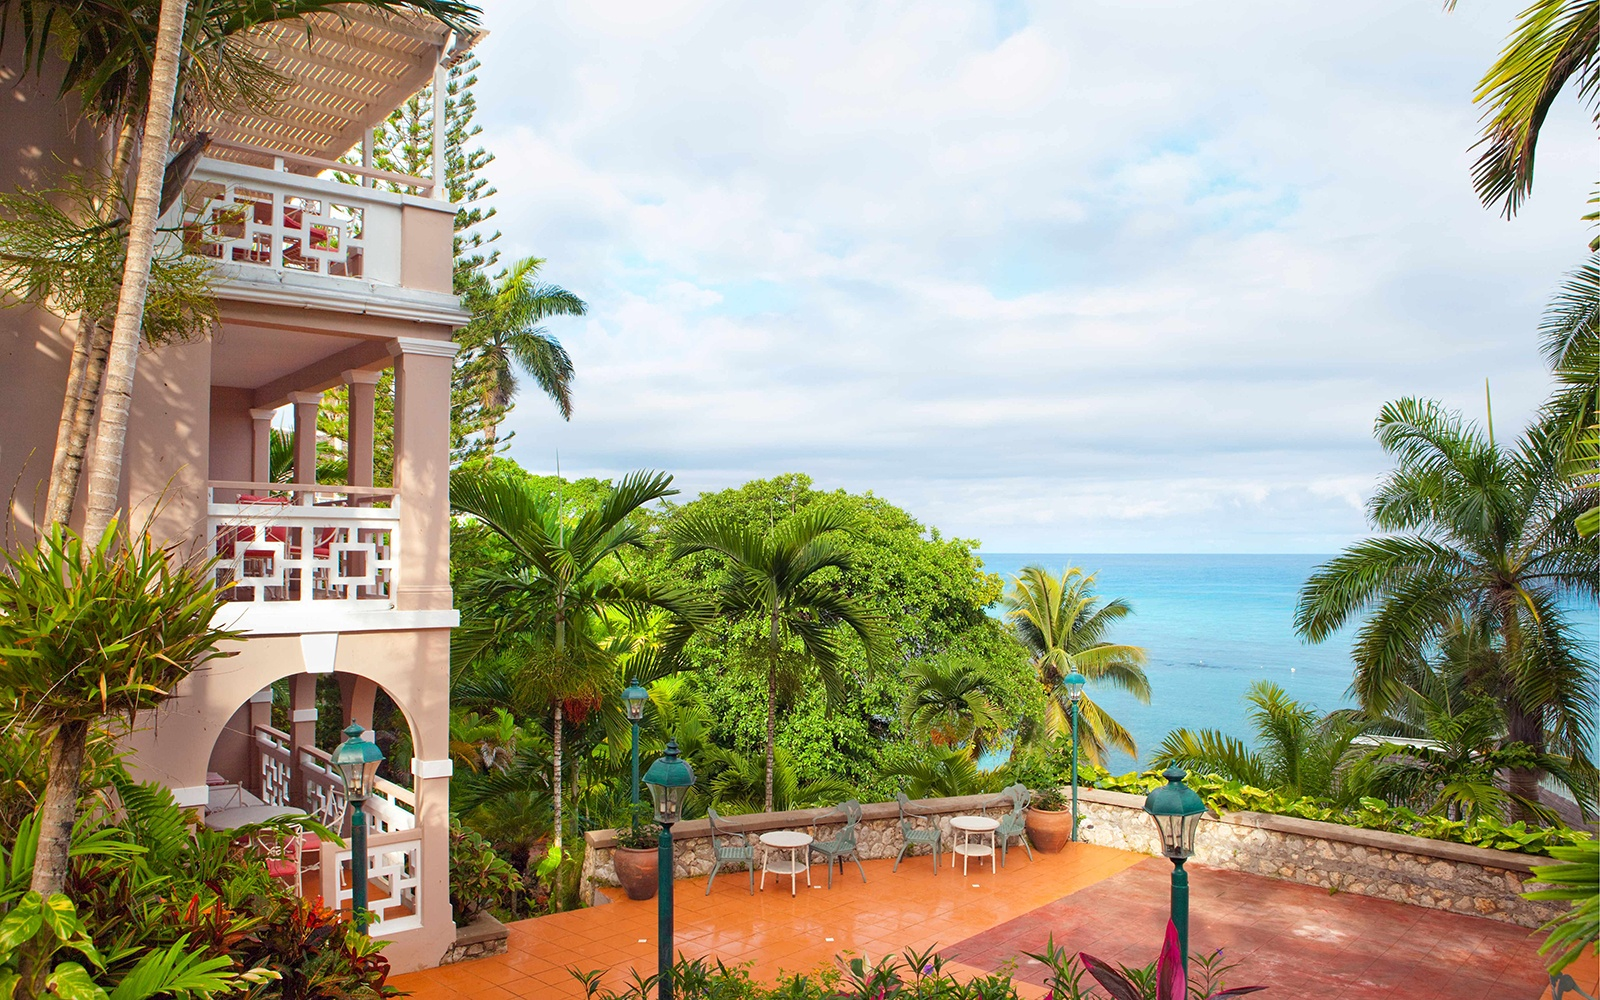 Couples Sans Souci caribbean resort in St. Mary, Jamaica